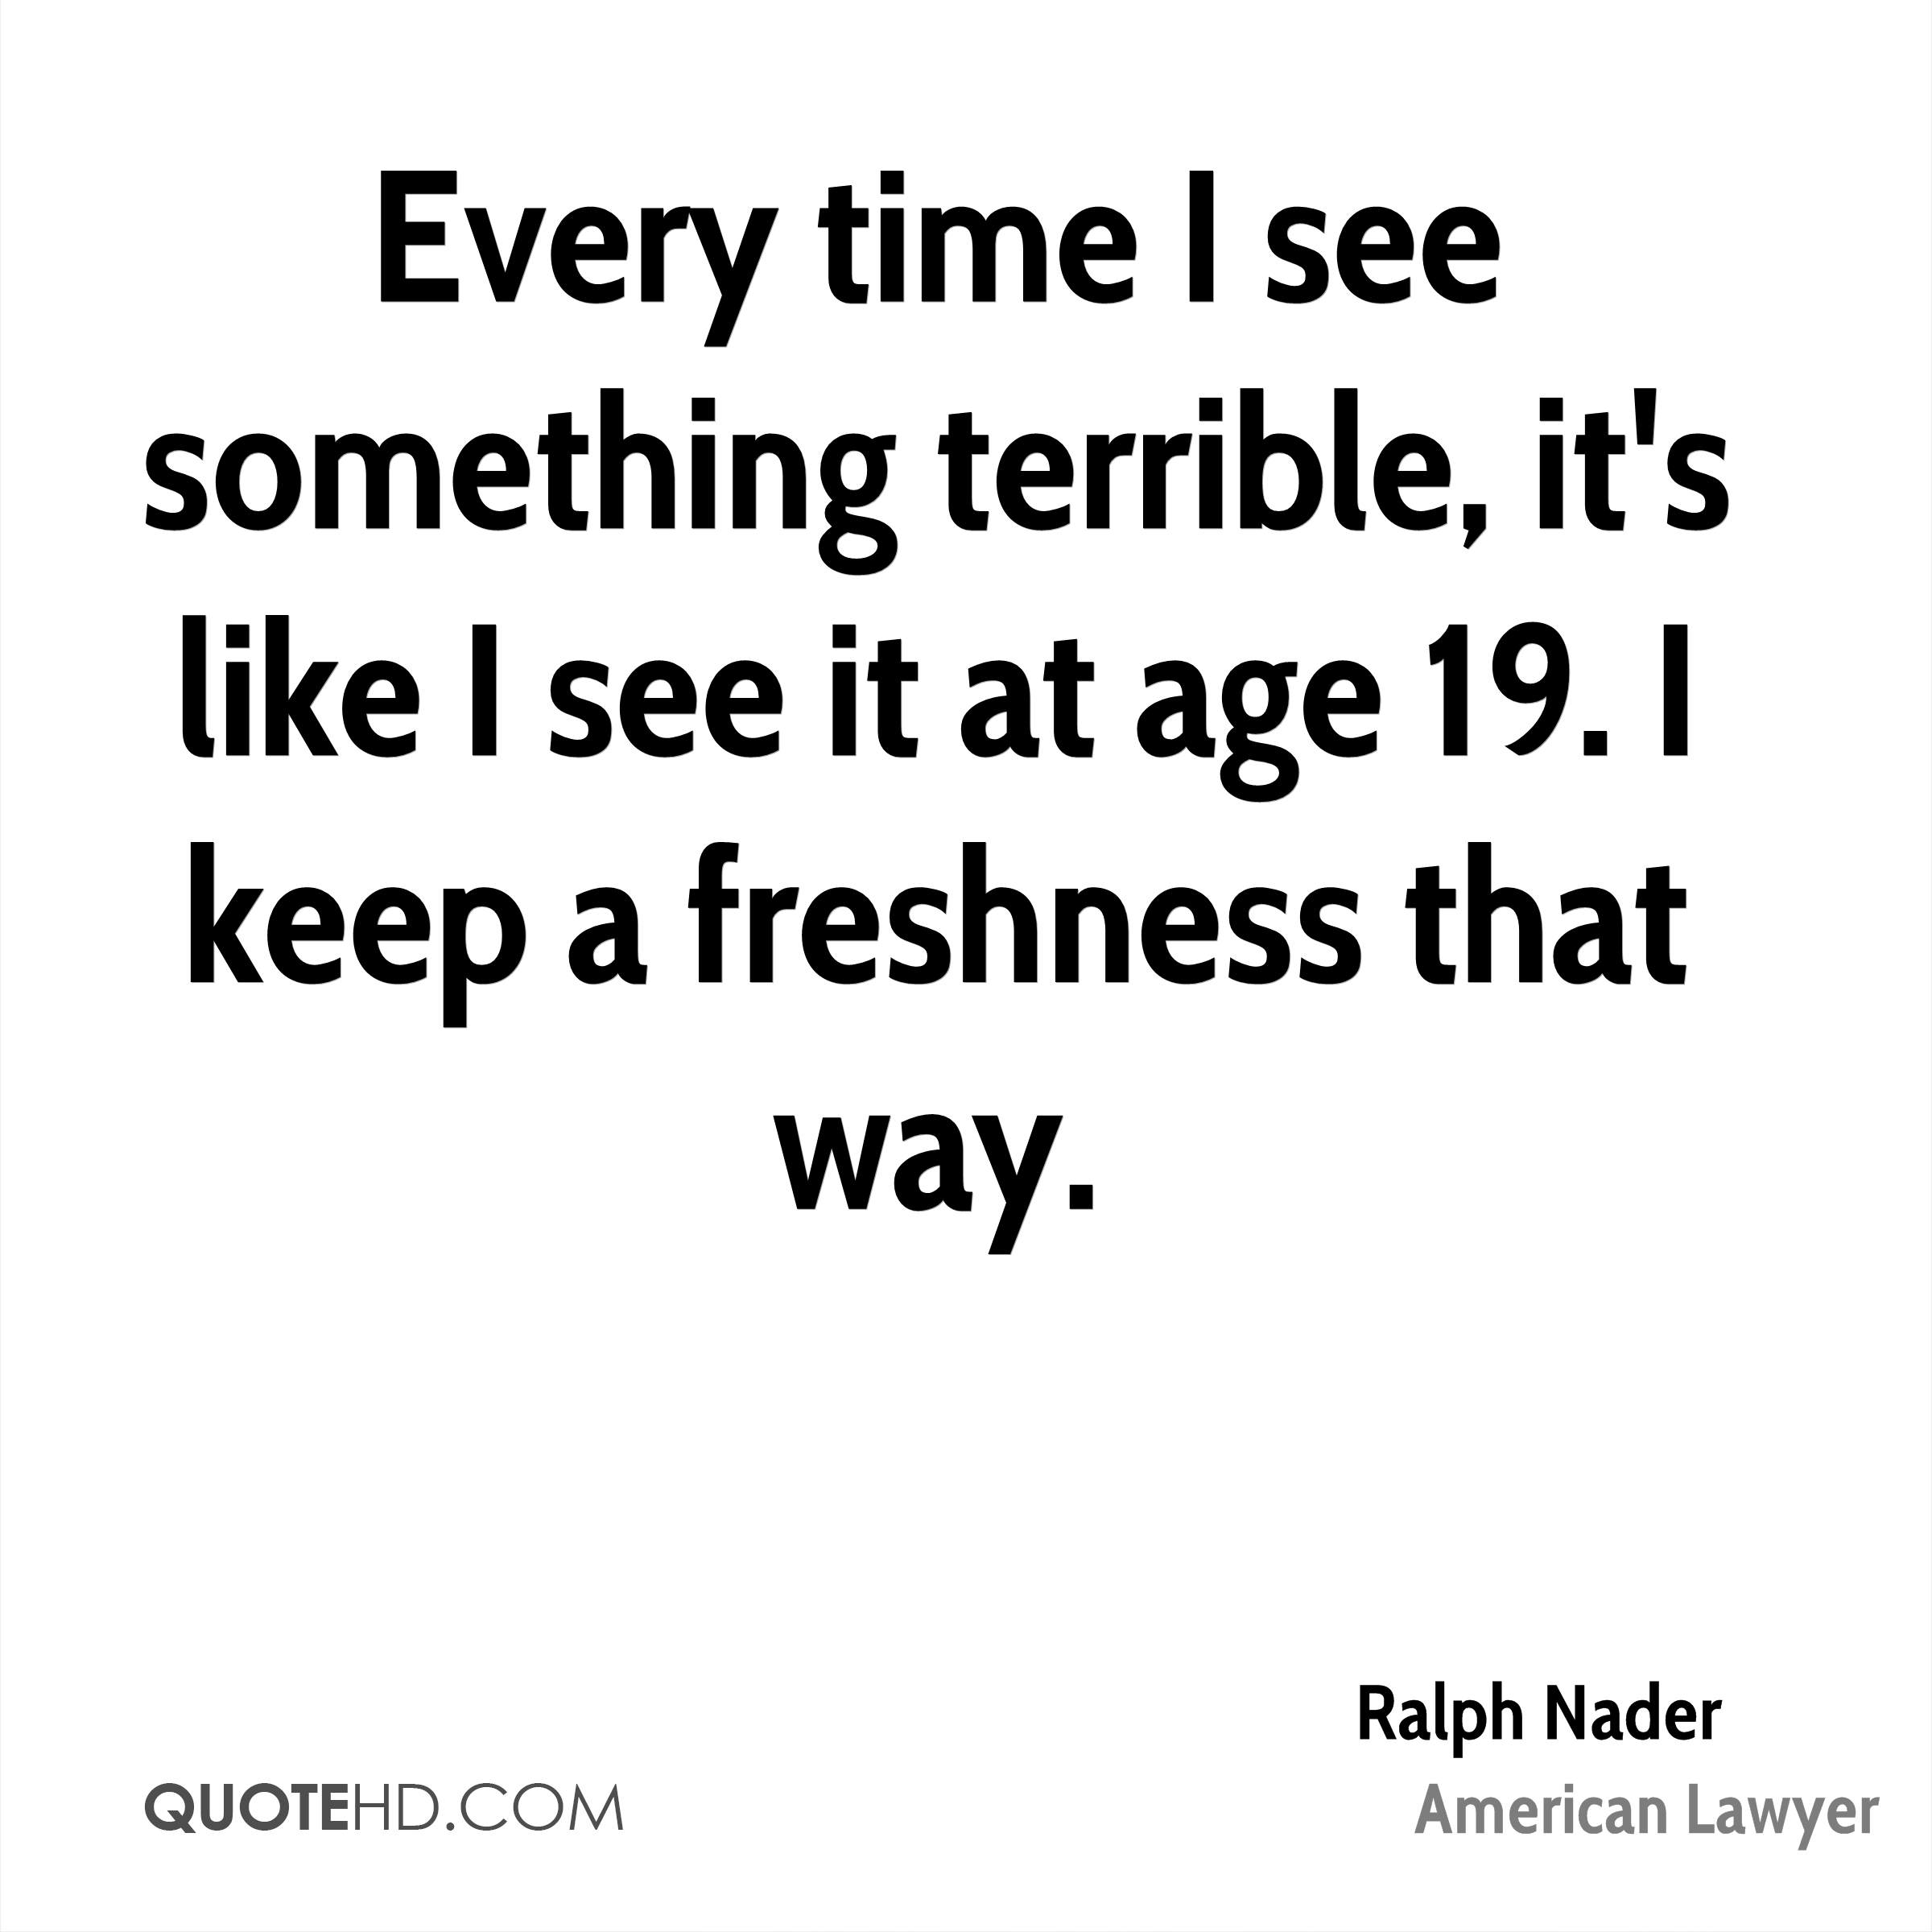 Every time I see something terrible, it's like I see it at age 19. I keep a freshness that way.